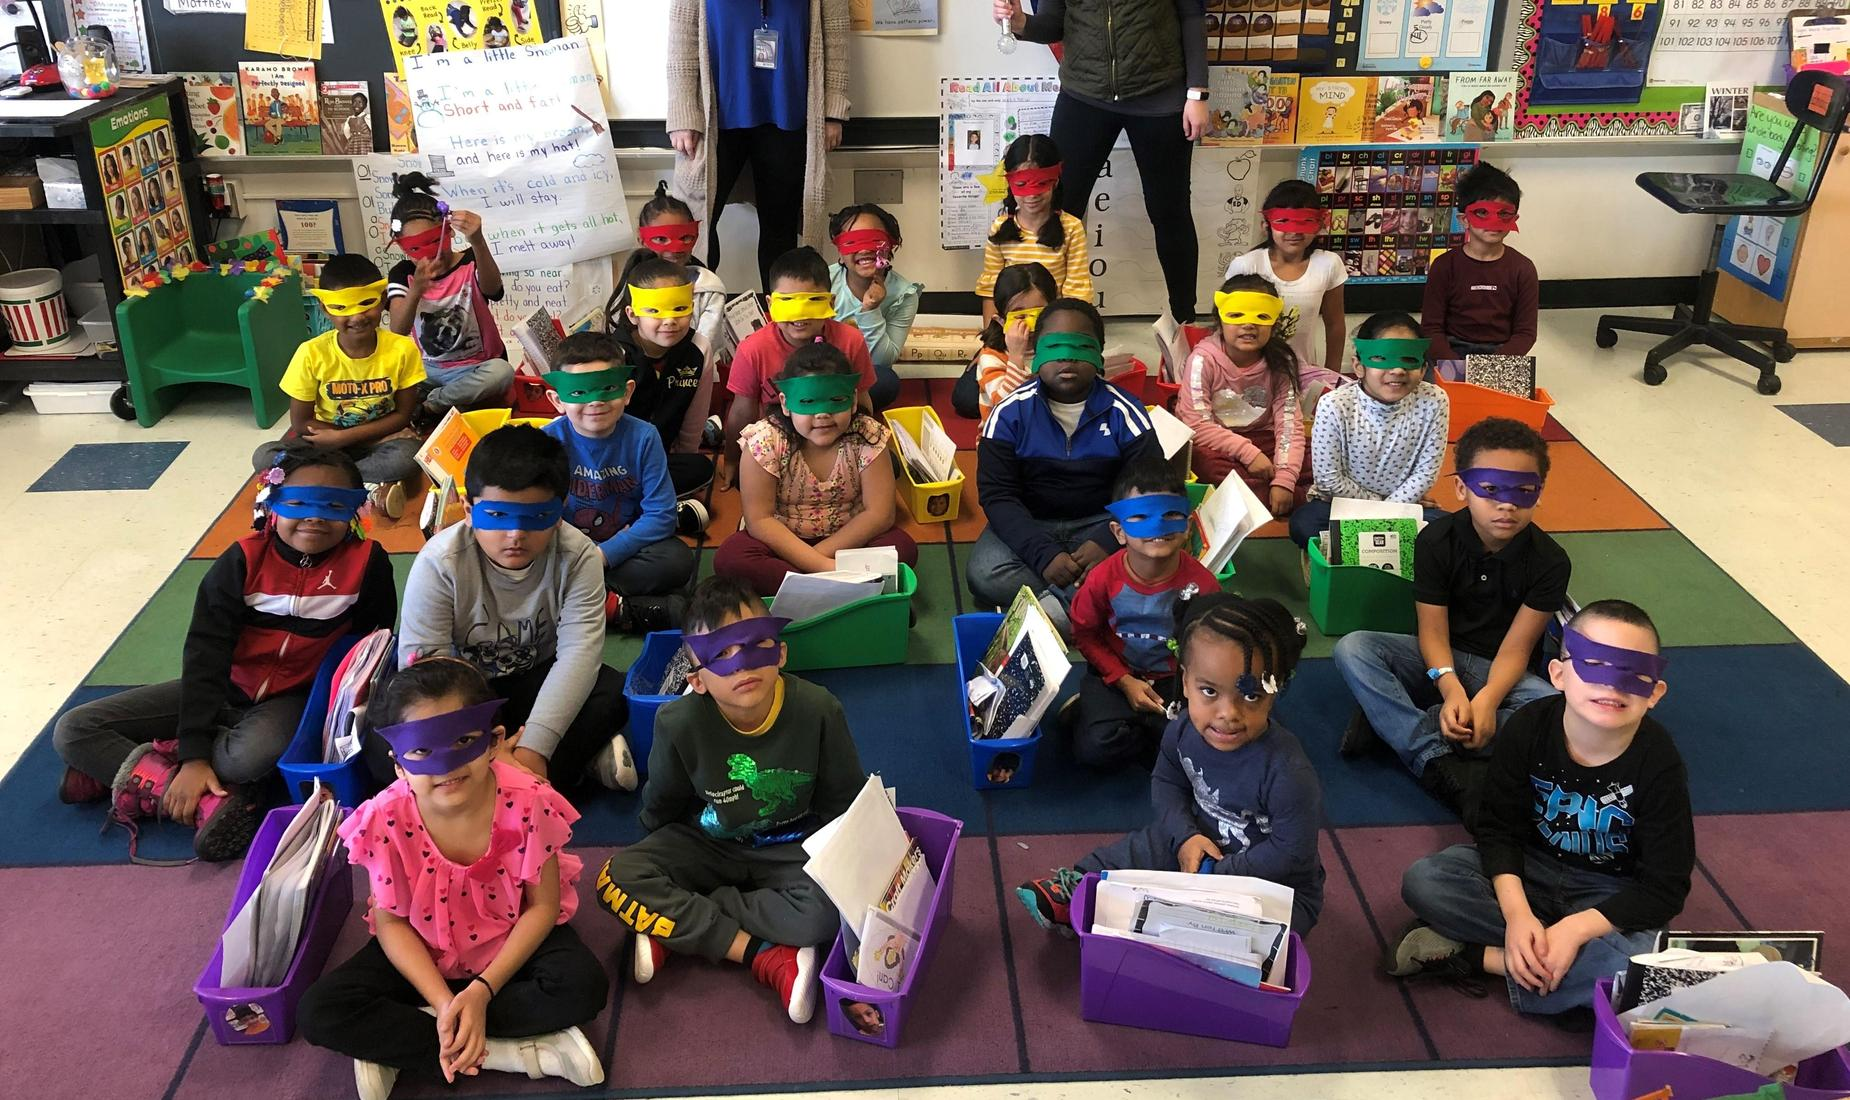 Girls and boys sitting on a colorful carpet wearing blue, purple, red, yellow eye masks. They are Super Readers.